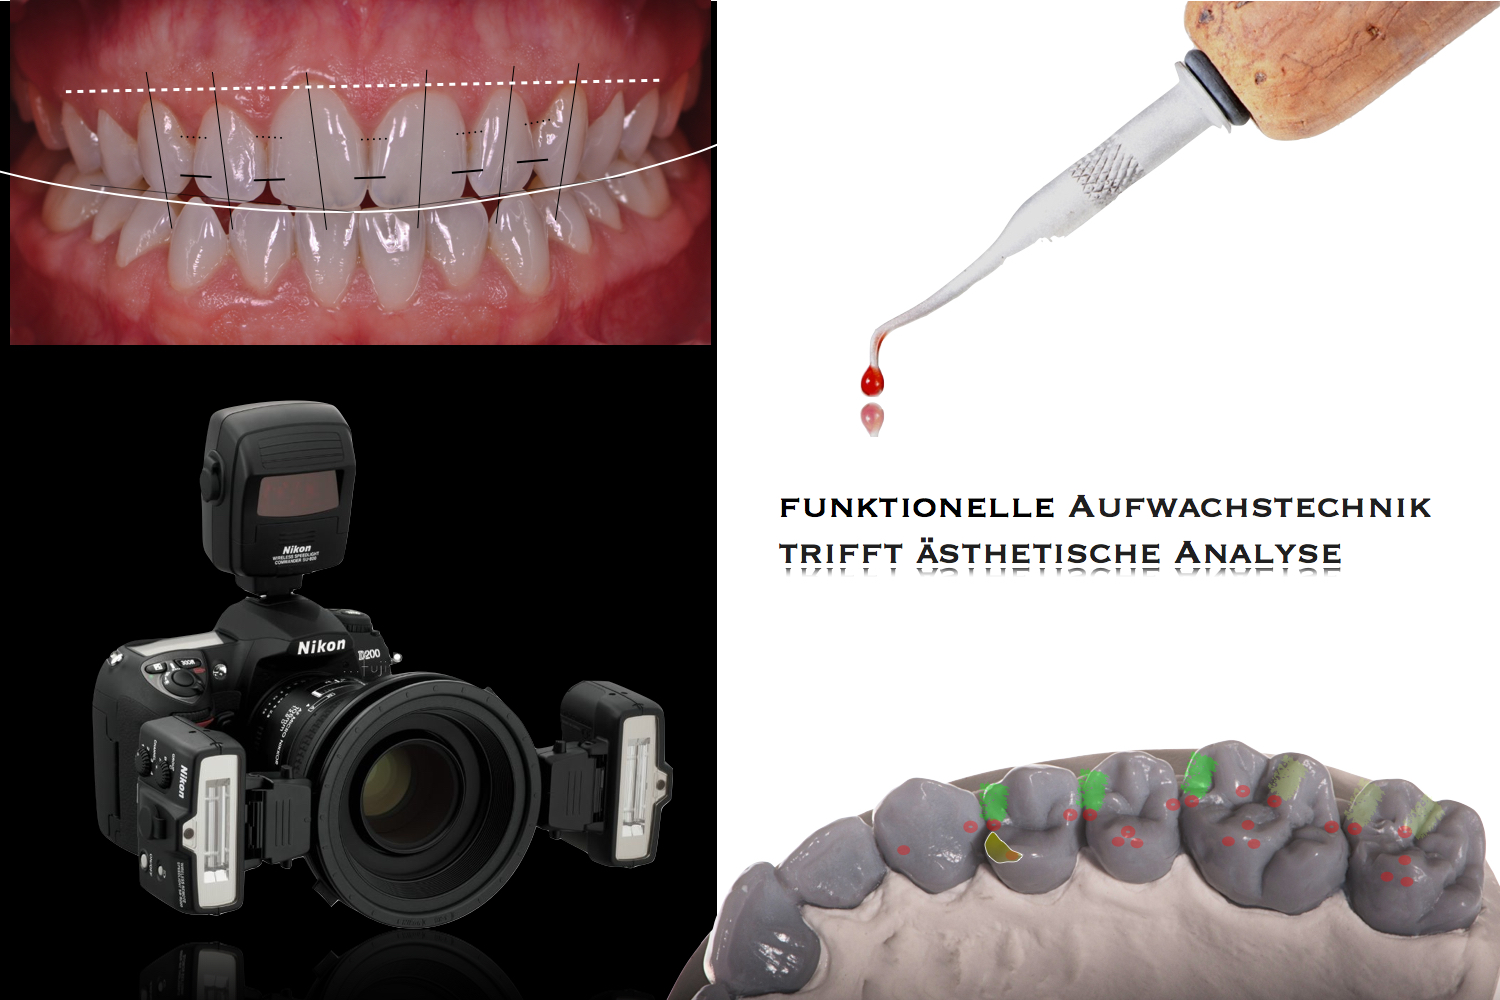 dental photography meets waxing technique